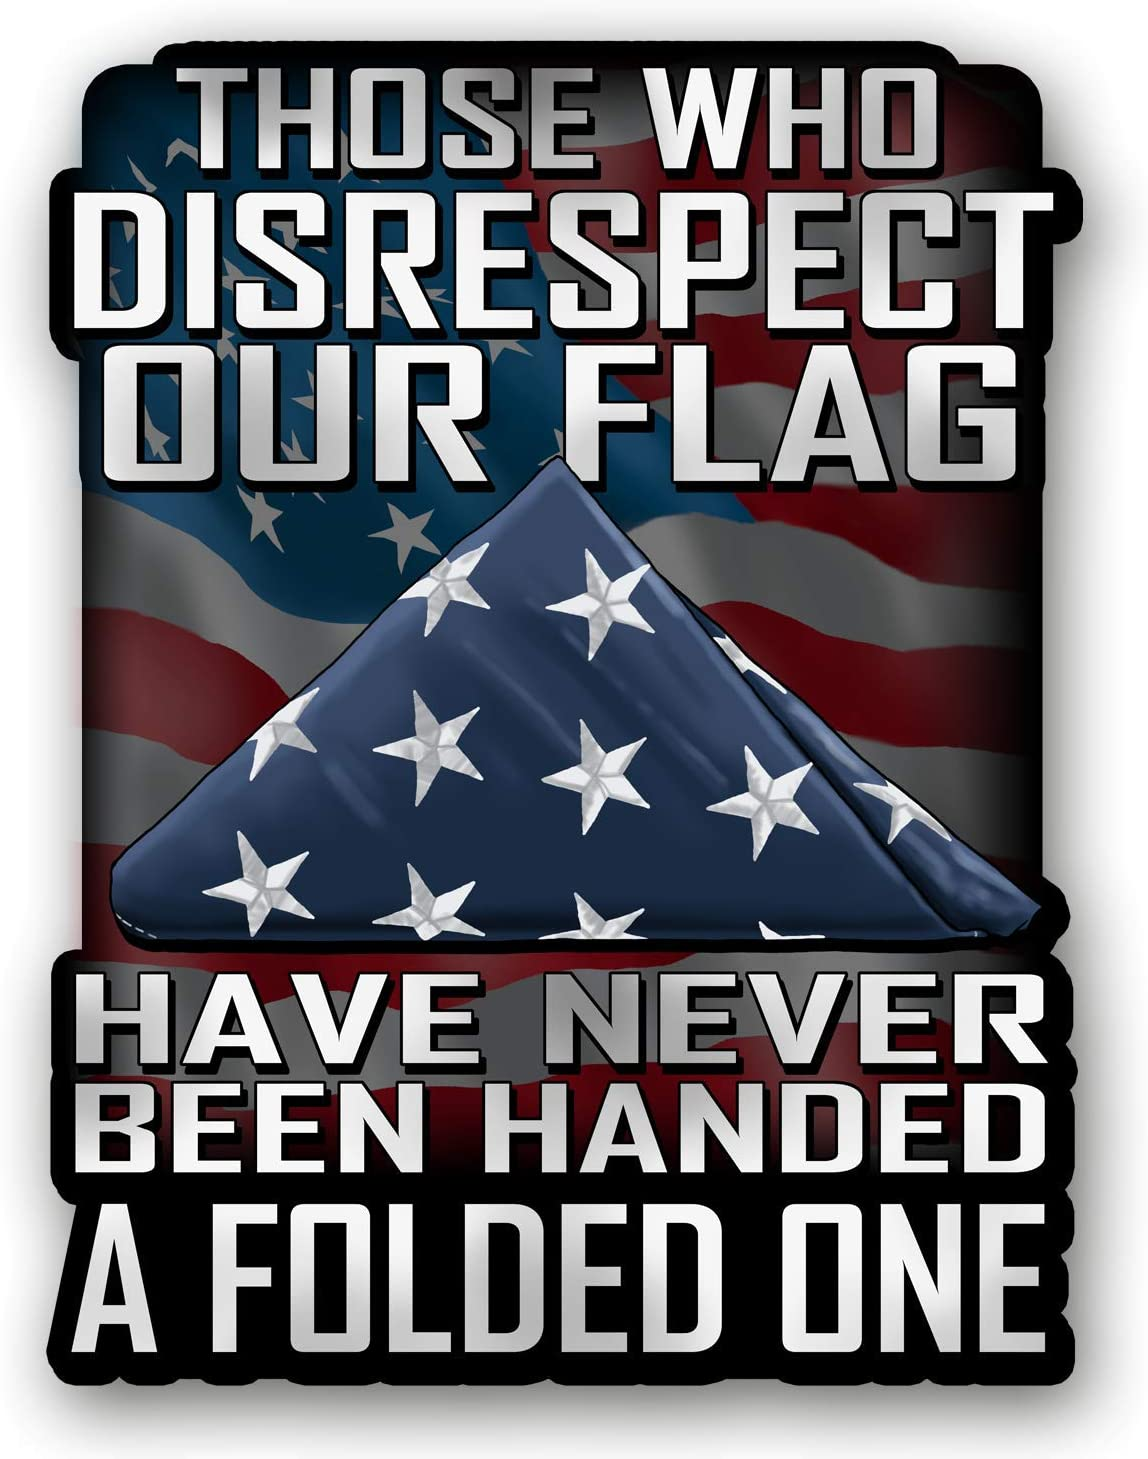 Skull Society Those Who Disrespect Our Flag Have Never Been Handed A Folded One 7 inch Decal for Cars, Trucks, Motorcycles, Boats & Laptops - Support Our Veterans